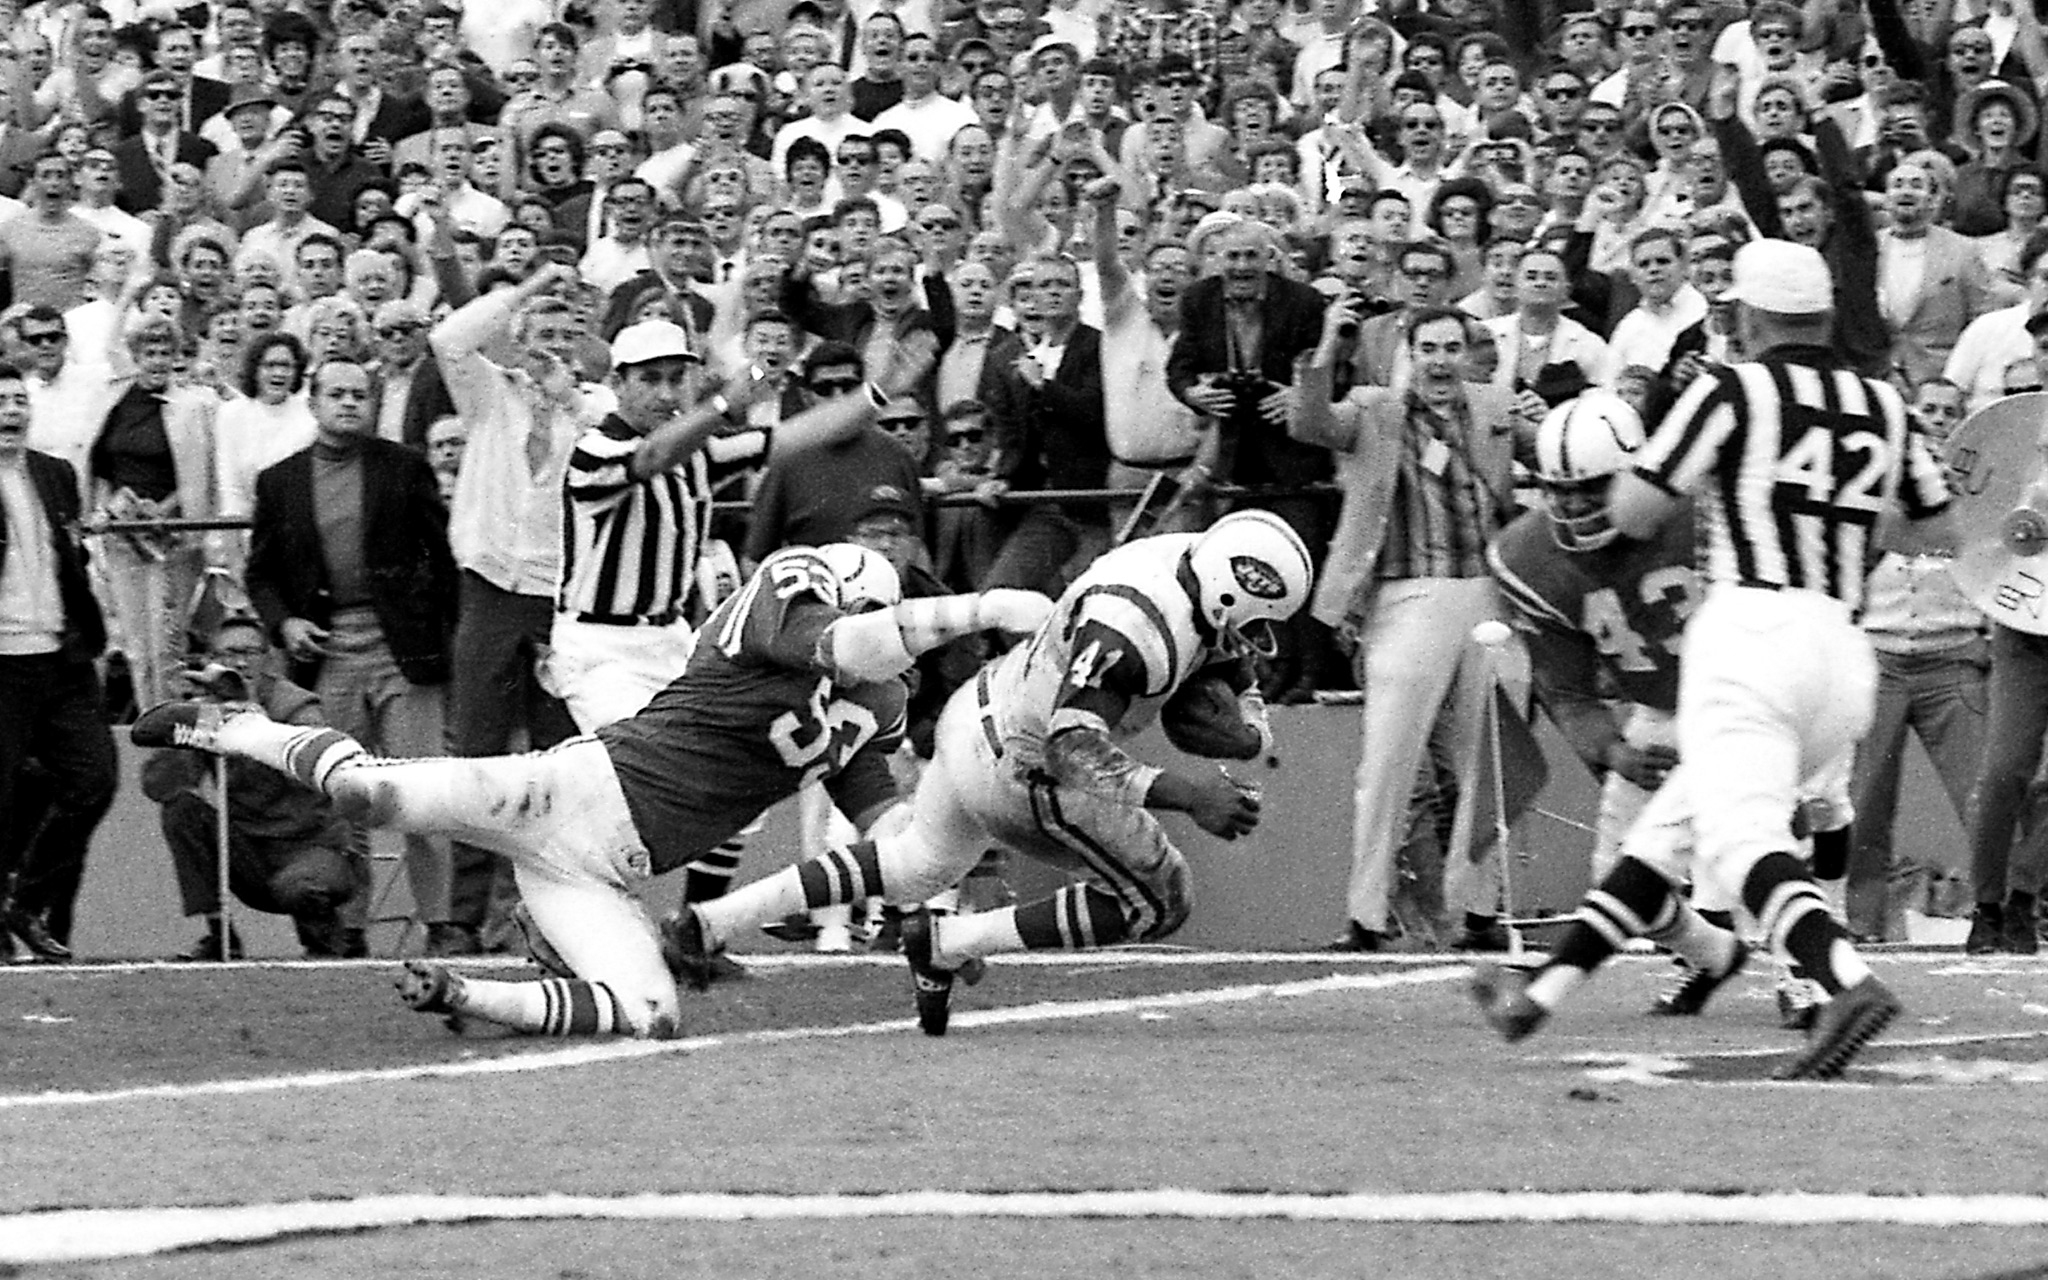 First Strike - New York Super Bowl Moments - Espn inside The First Super Bowl